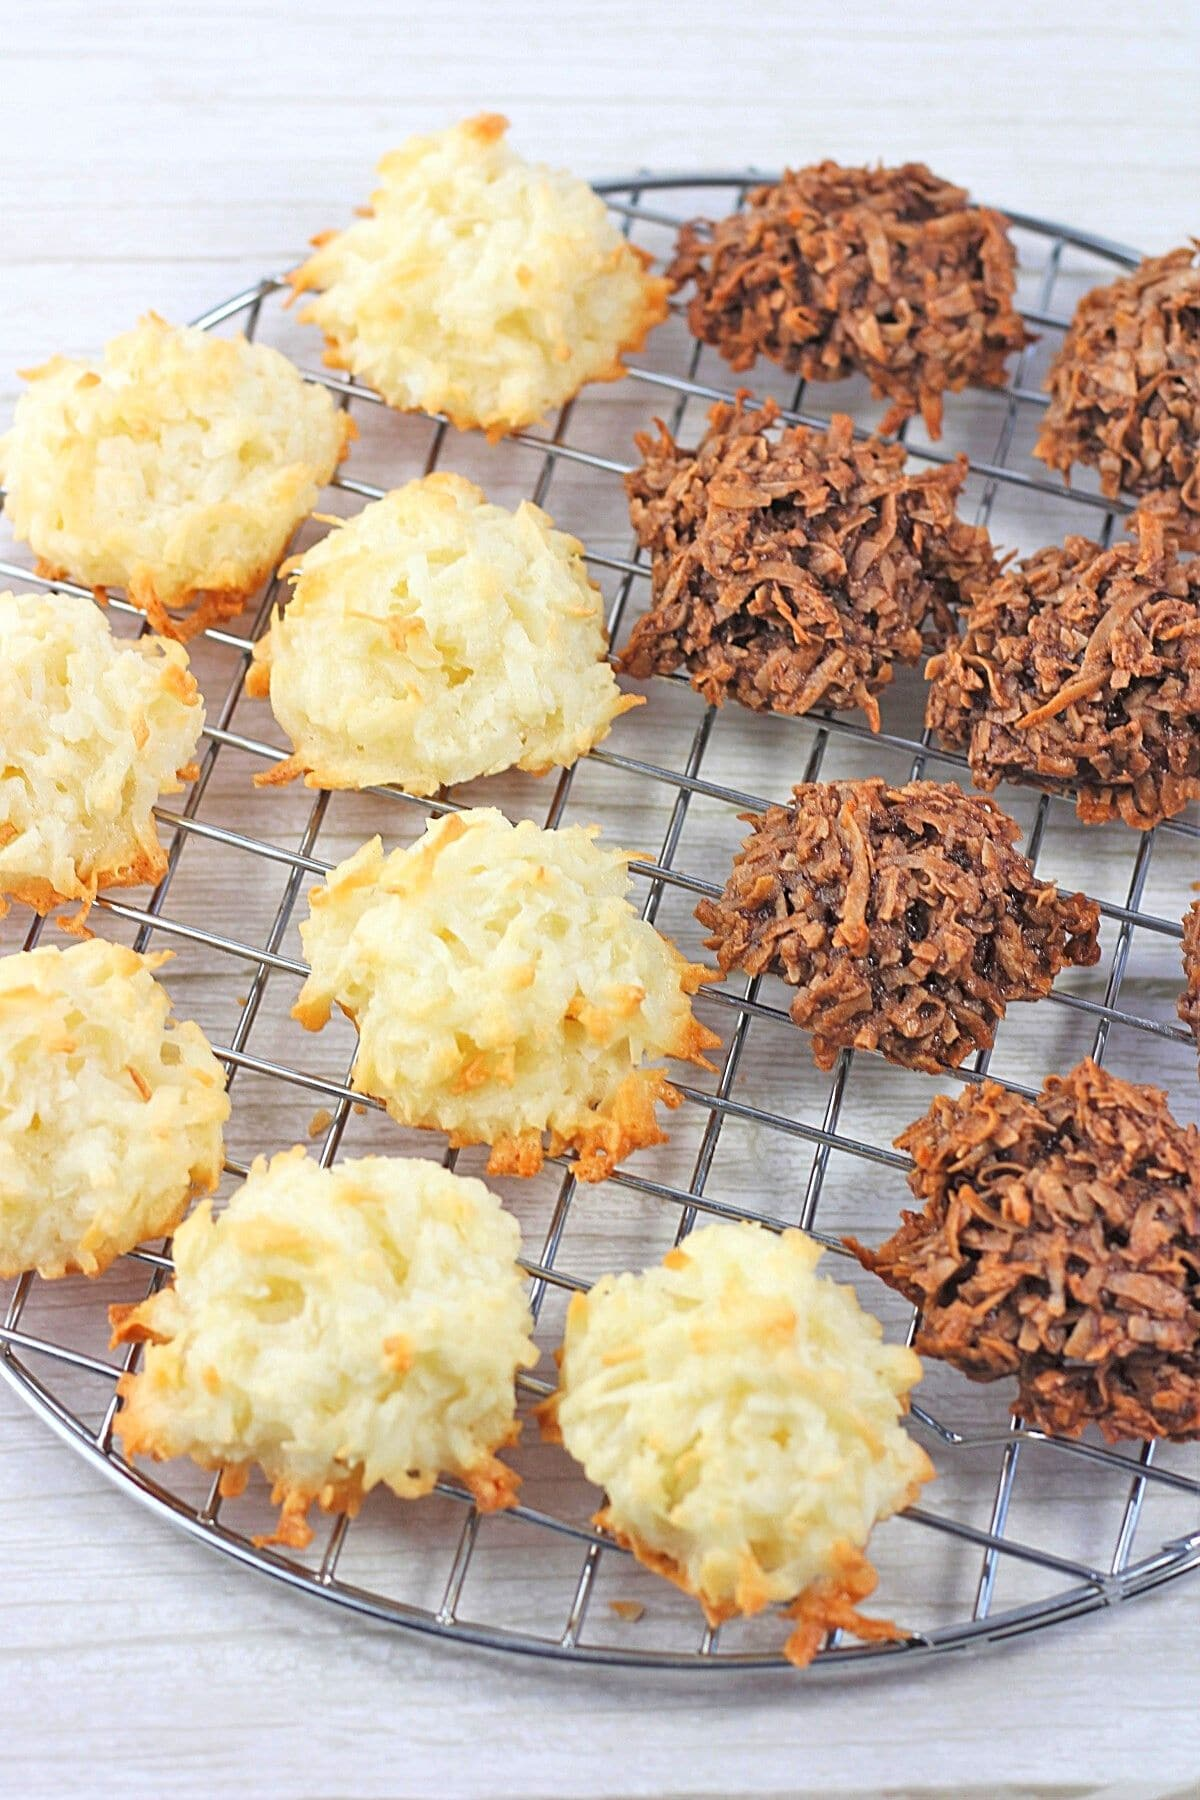 coconut macaroons and chocolate coconut macaroons on a wire cooling rack